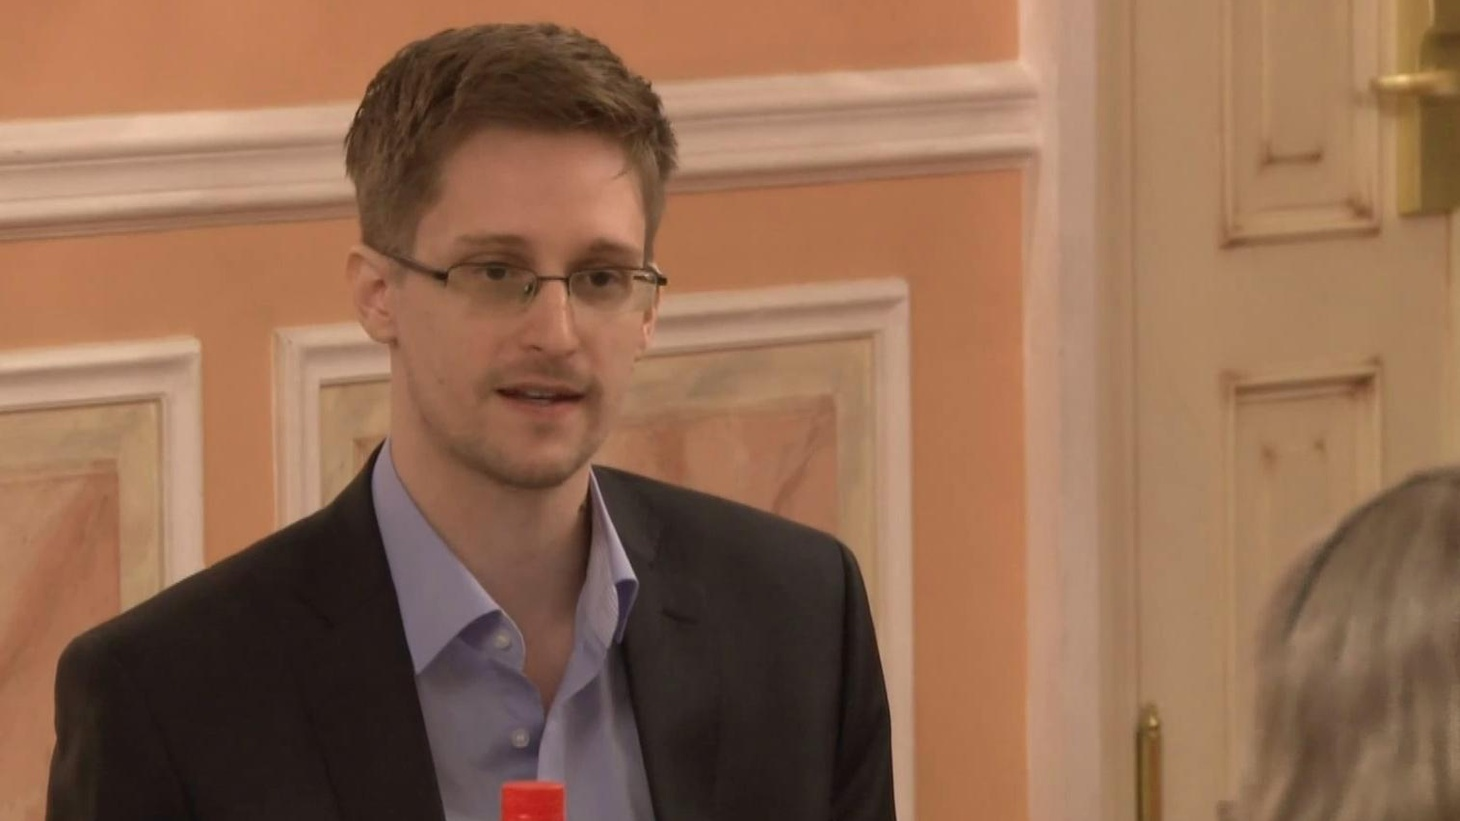 Edward Snowden speaks at SXSW, Republicans and Democrats hold bicoastal conferences, Tyson Foods takes over the chicken industry, and rethinking addiction.